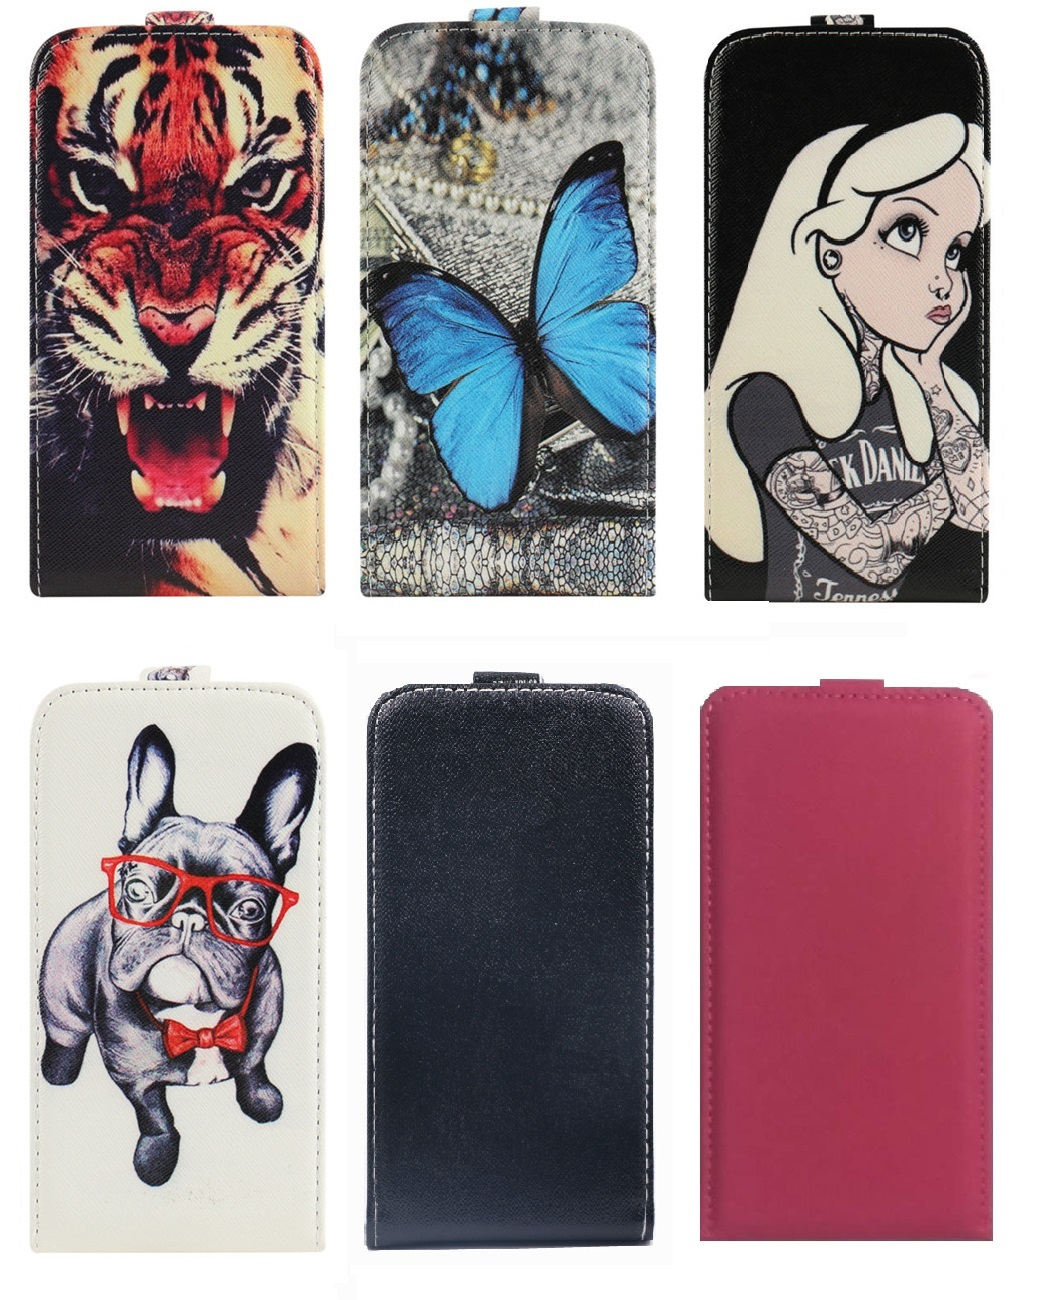 Yooyour Luxury high-grade printed butterfly universal flip leather phone case for Fly IQ4505 ERA Life 7